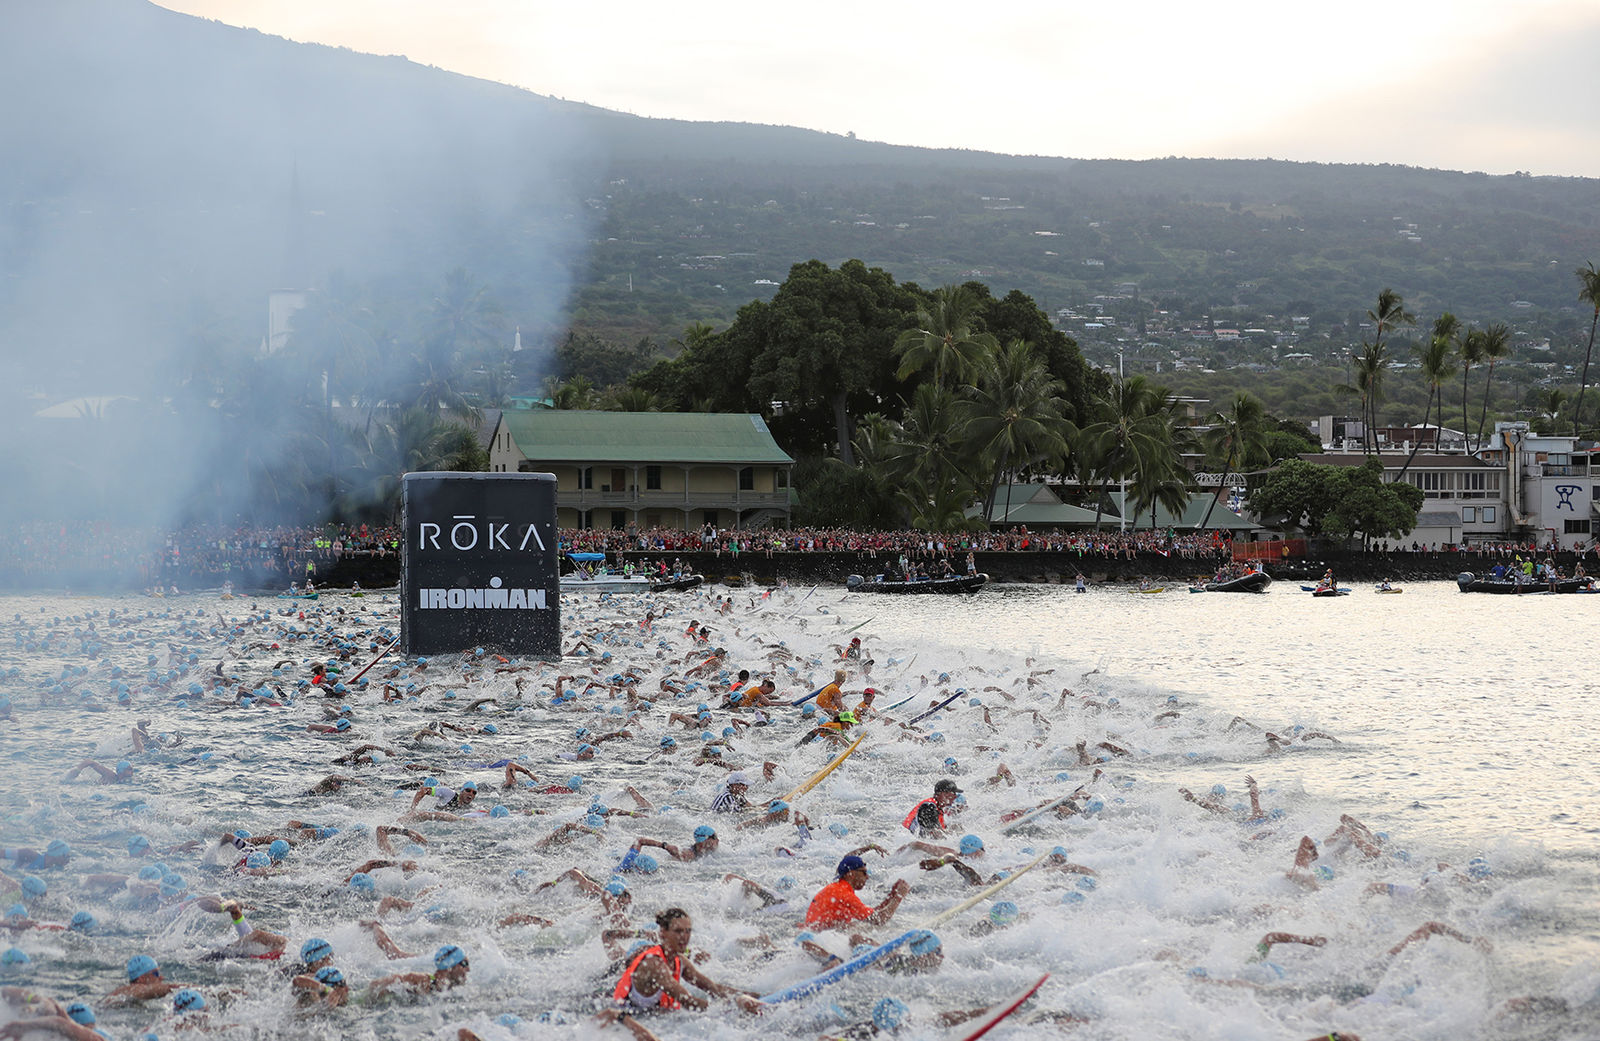 ironman world championship photo essay trimarket the 06 55 start of the age group men the largest contingent in kona